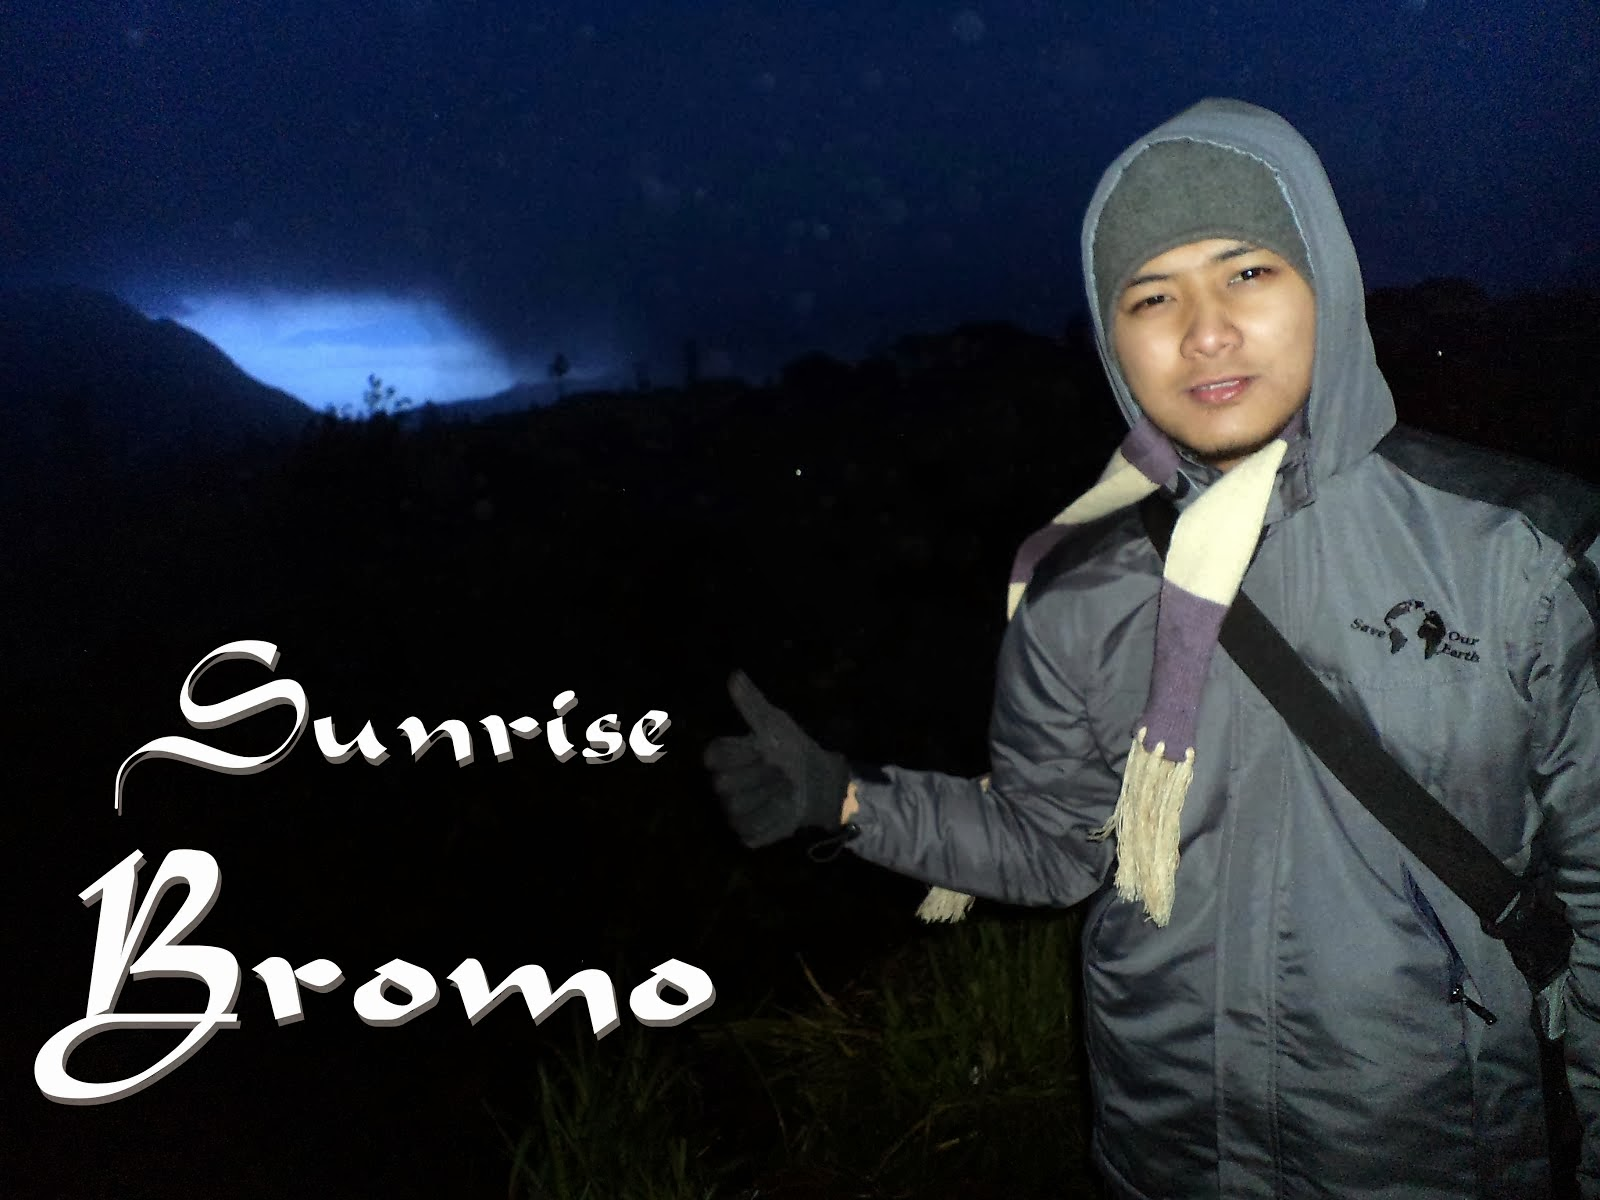 Sunrise in Bromo